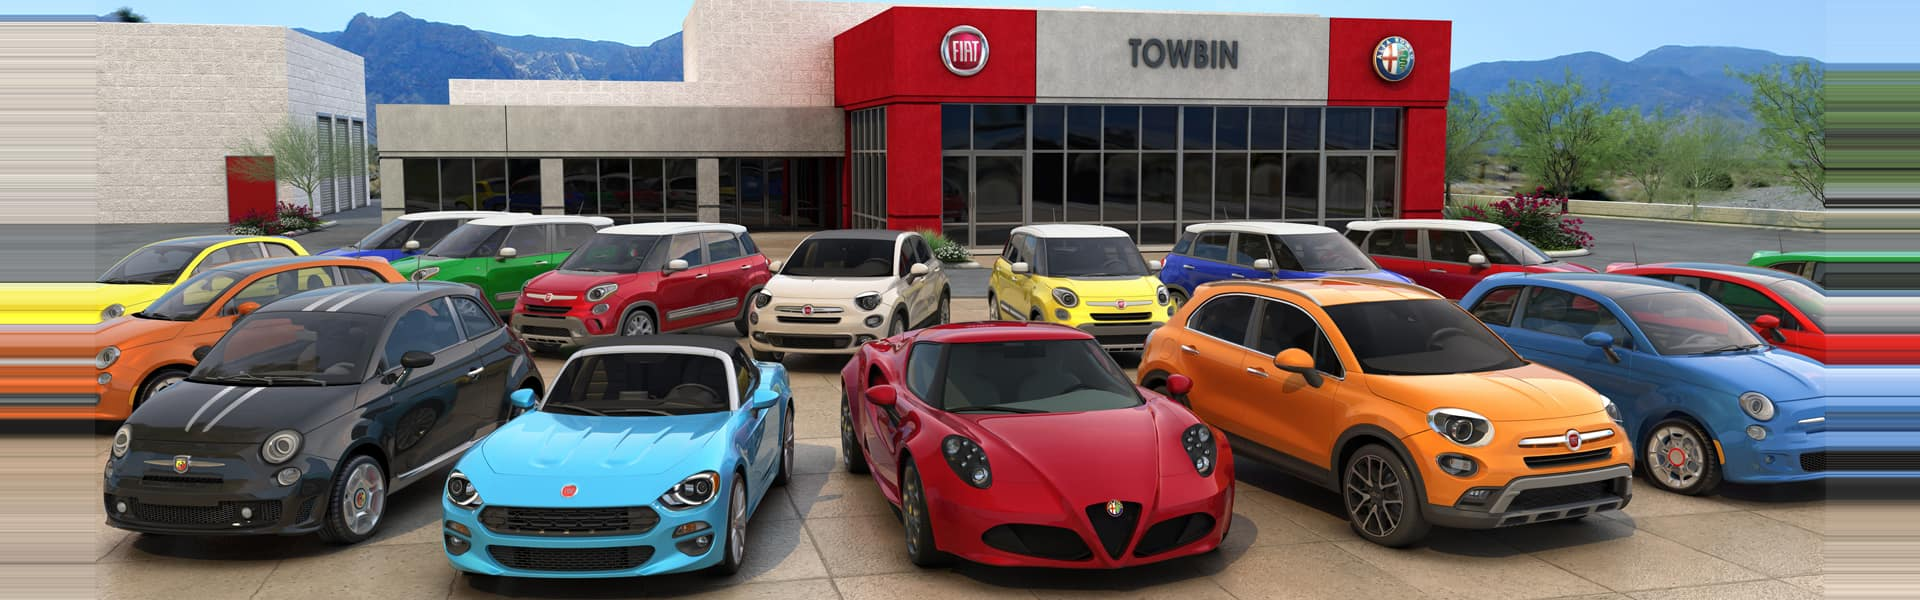 Towbin Fiat Fiat Dealer In Las Vegas Nv